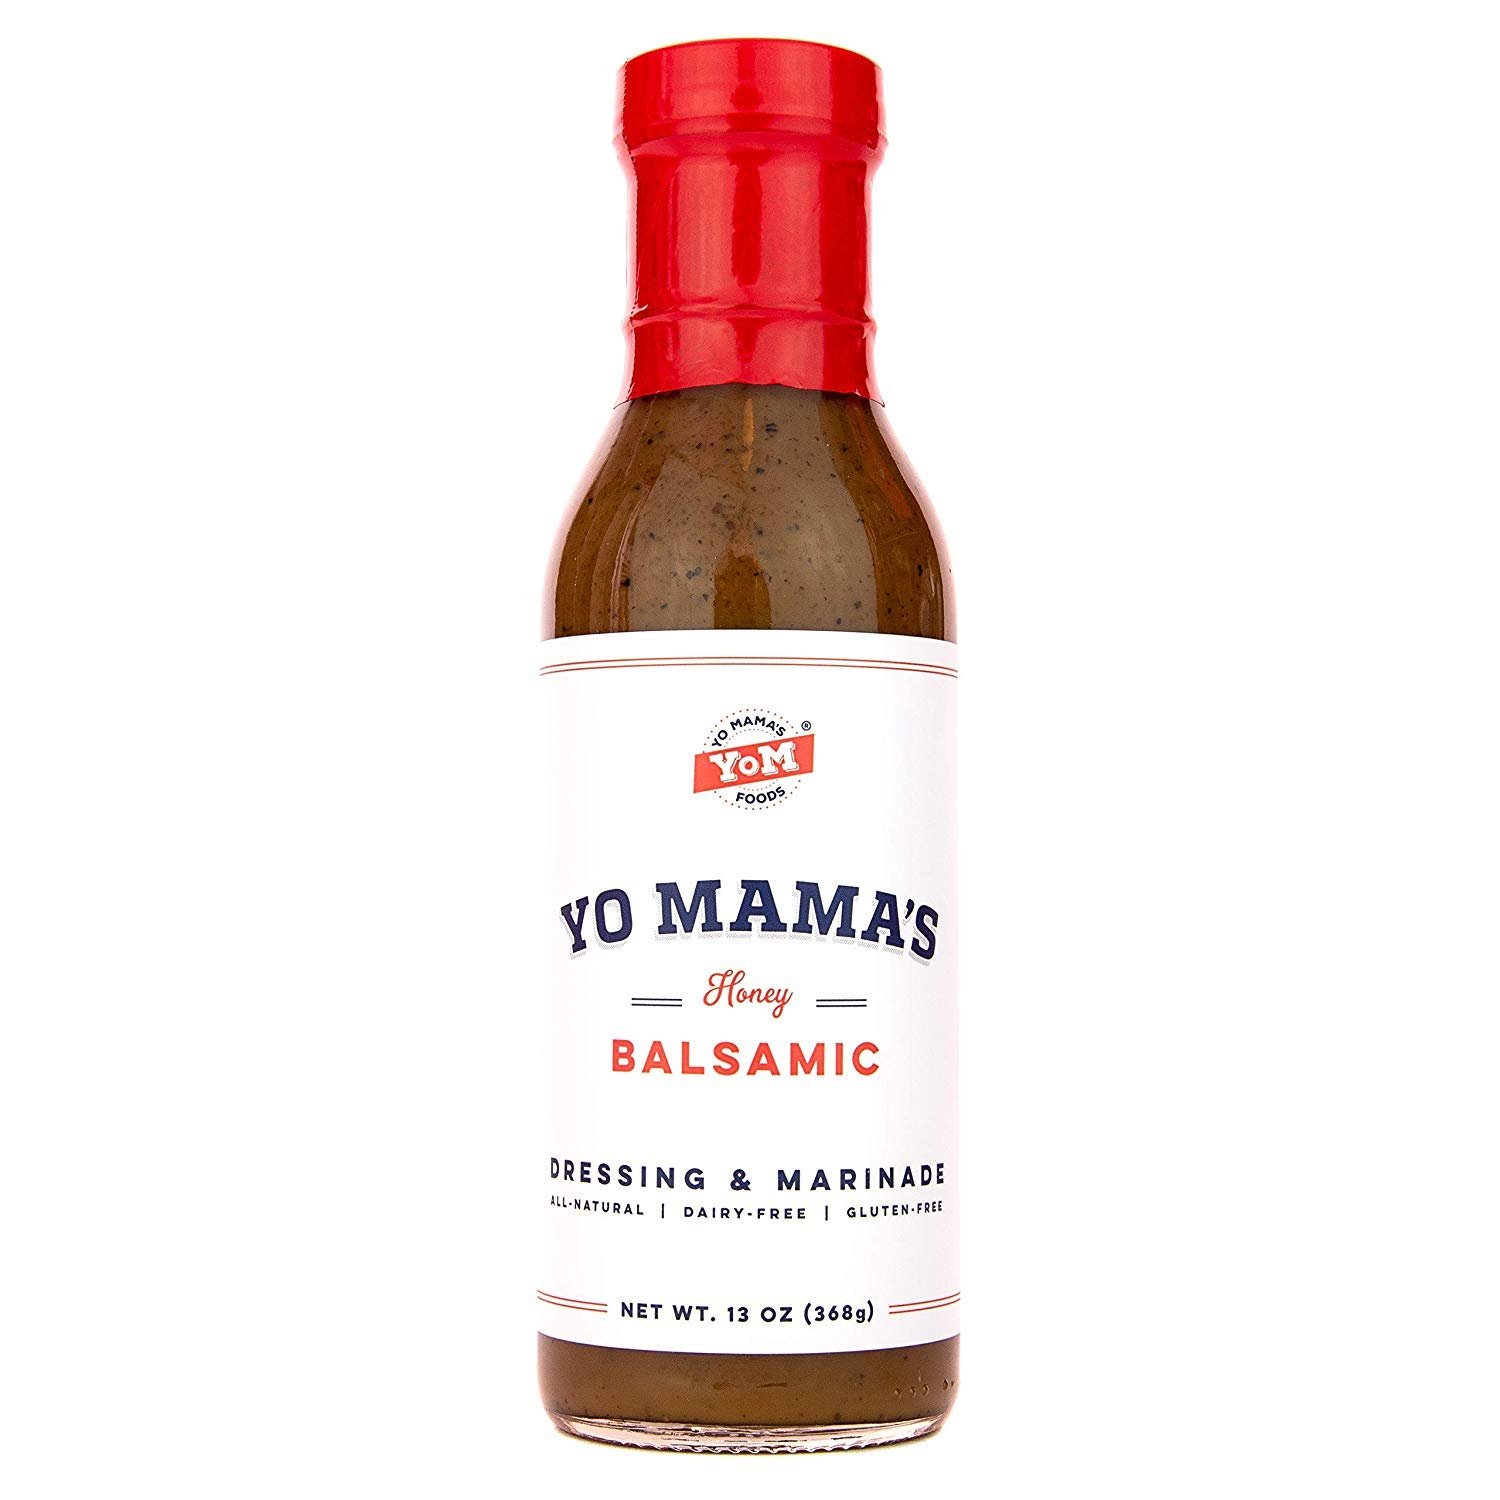 Gourmet Natural Balsamic Vinaigrette Dressing and Marinade by Yo Mama's Foods - Pack of (1) - Low Carb, Low Sodium, and Gluten-Free